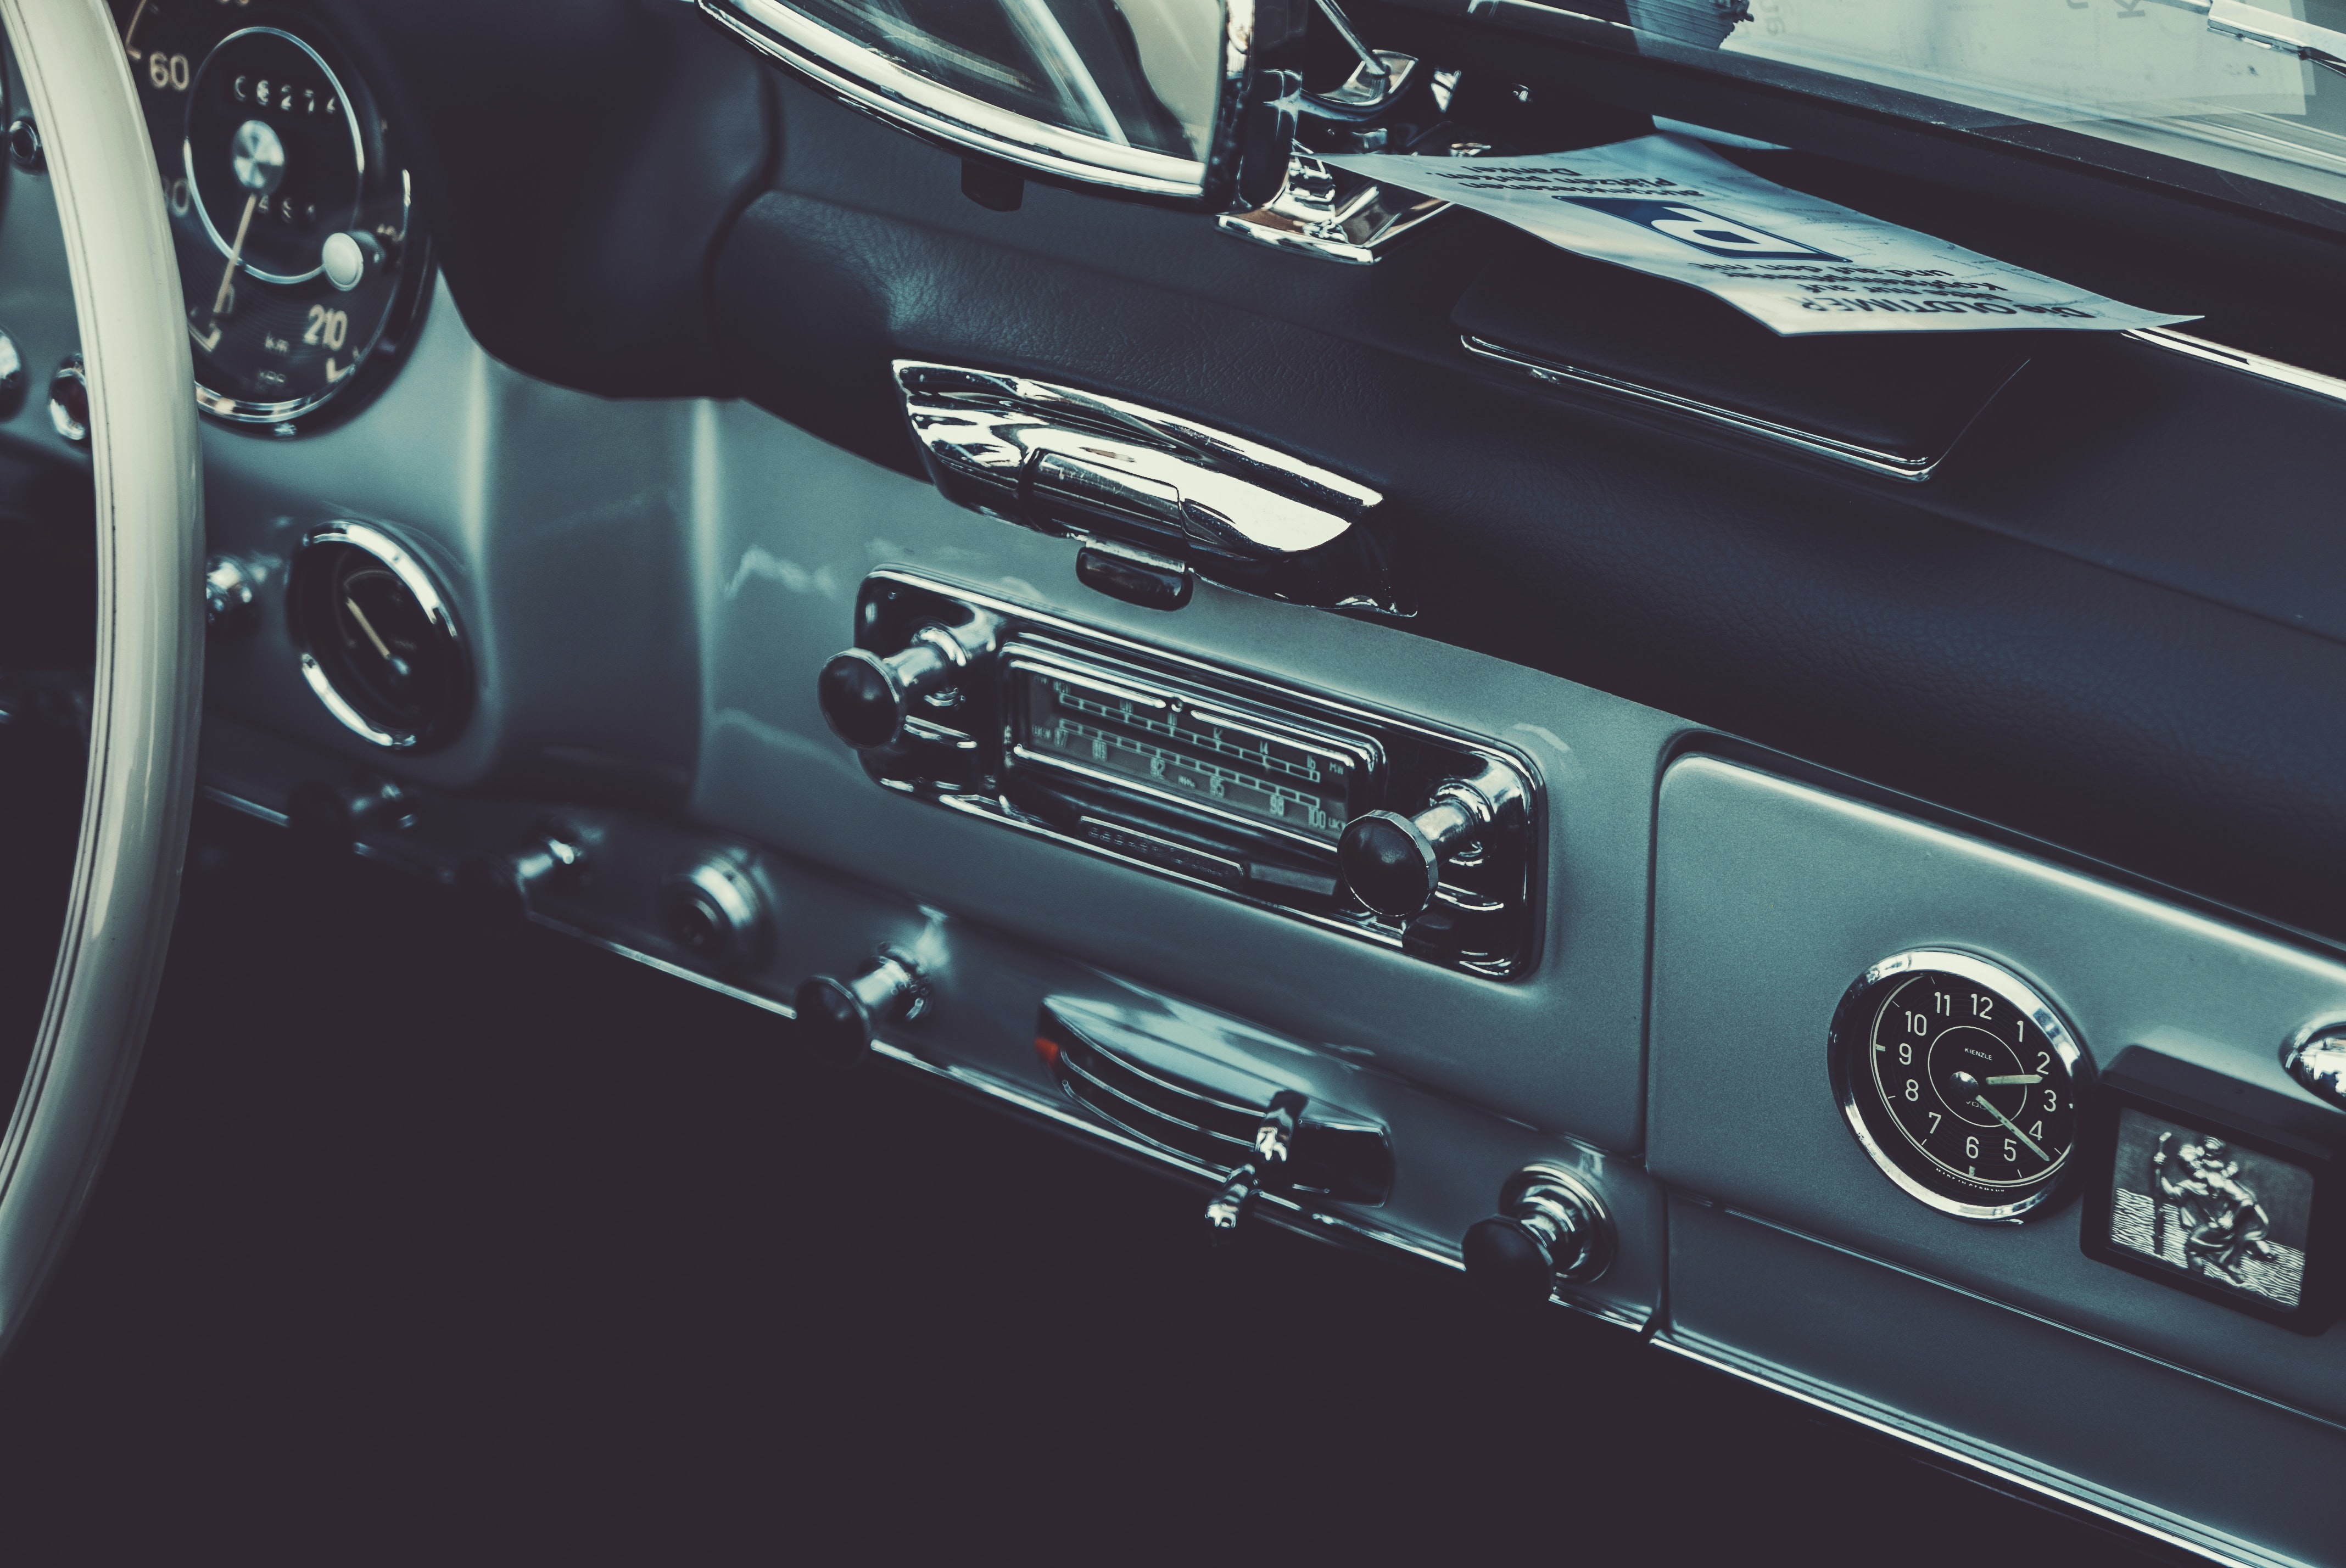 Cropped view of a vintage car's radio.